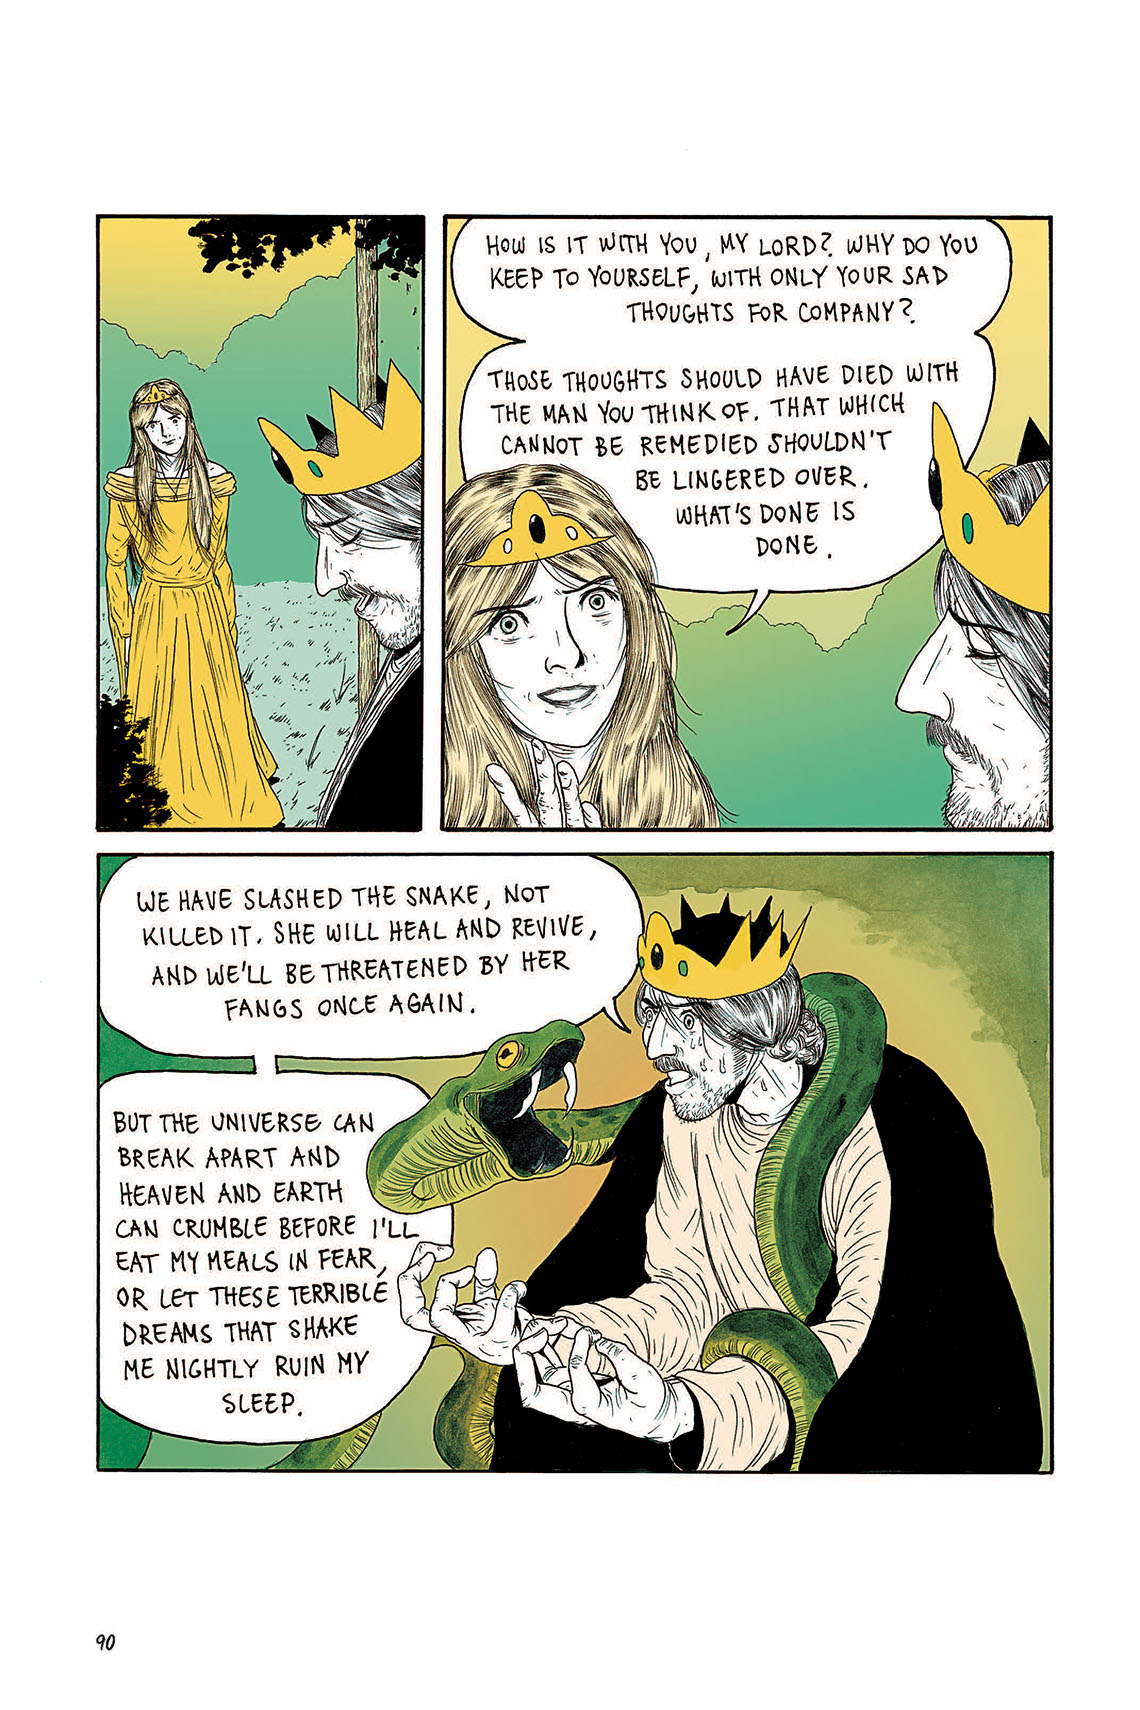 Macbeth Act 3 Scene 2 Page 90 Graphic Novel Sparknotes Sparknote 4 6